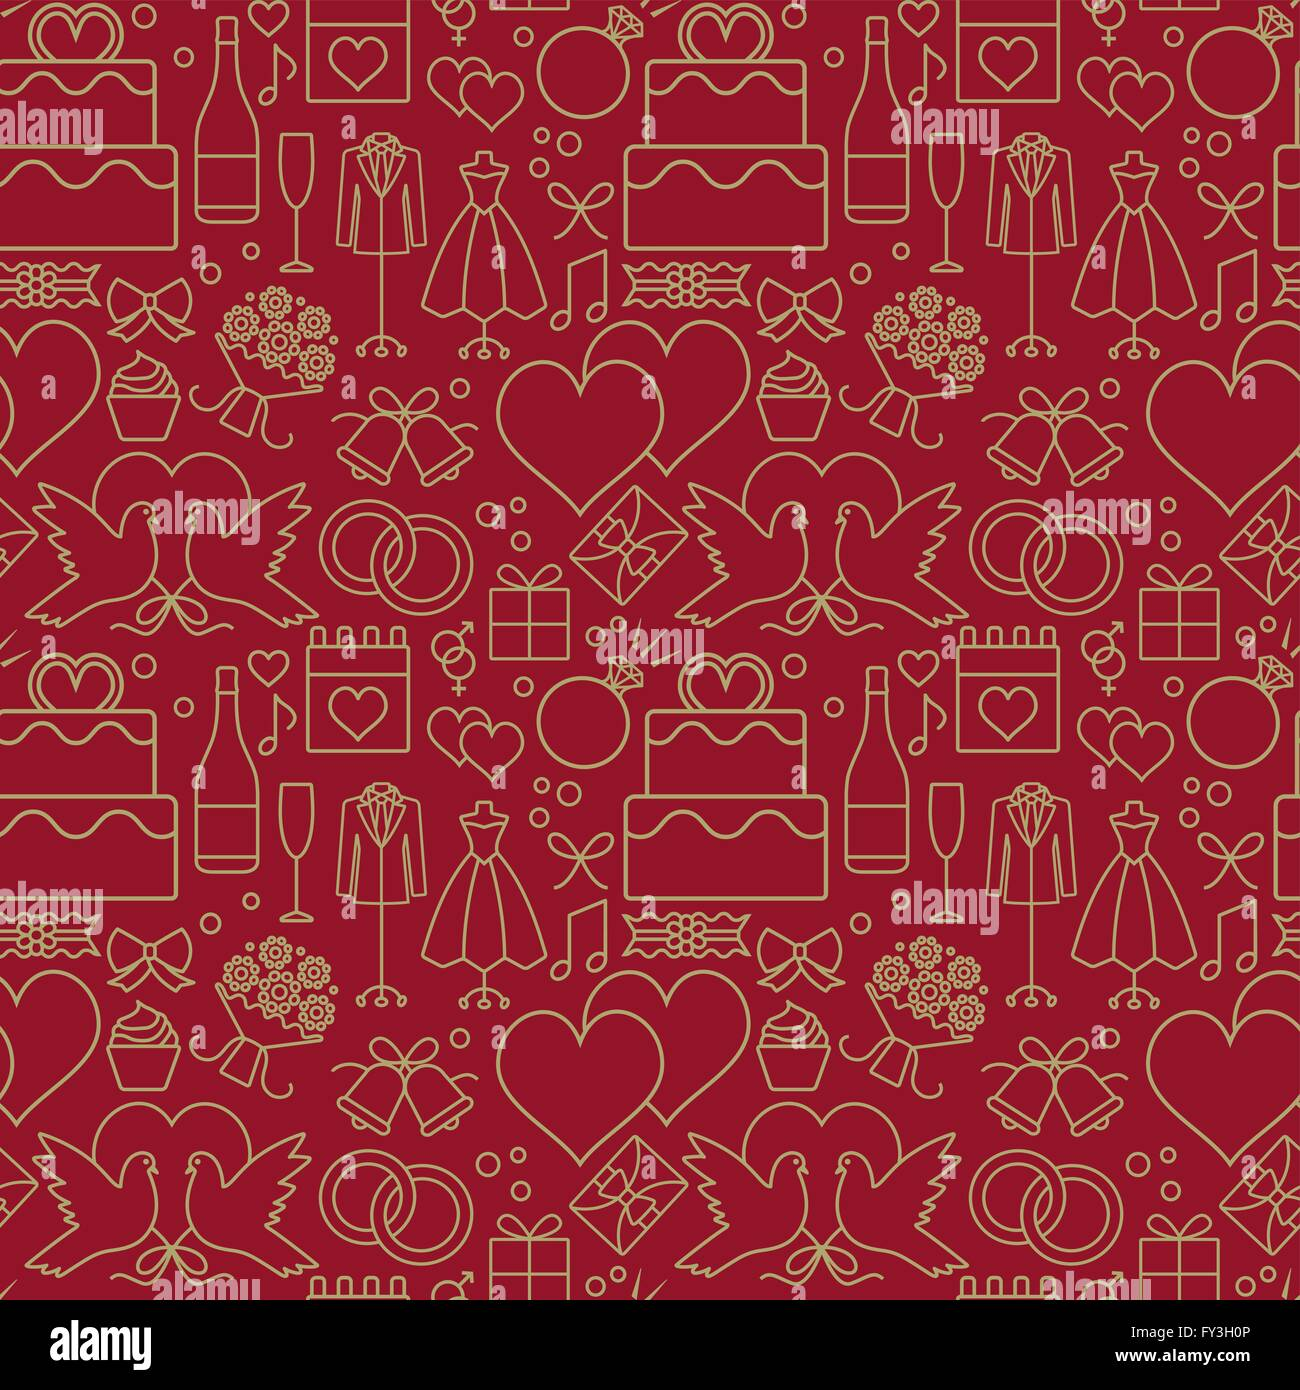 Gold And Red Wedding Themed Vector Seamless Pattern Background 2